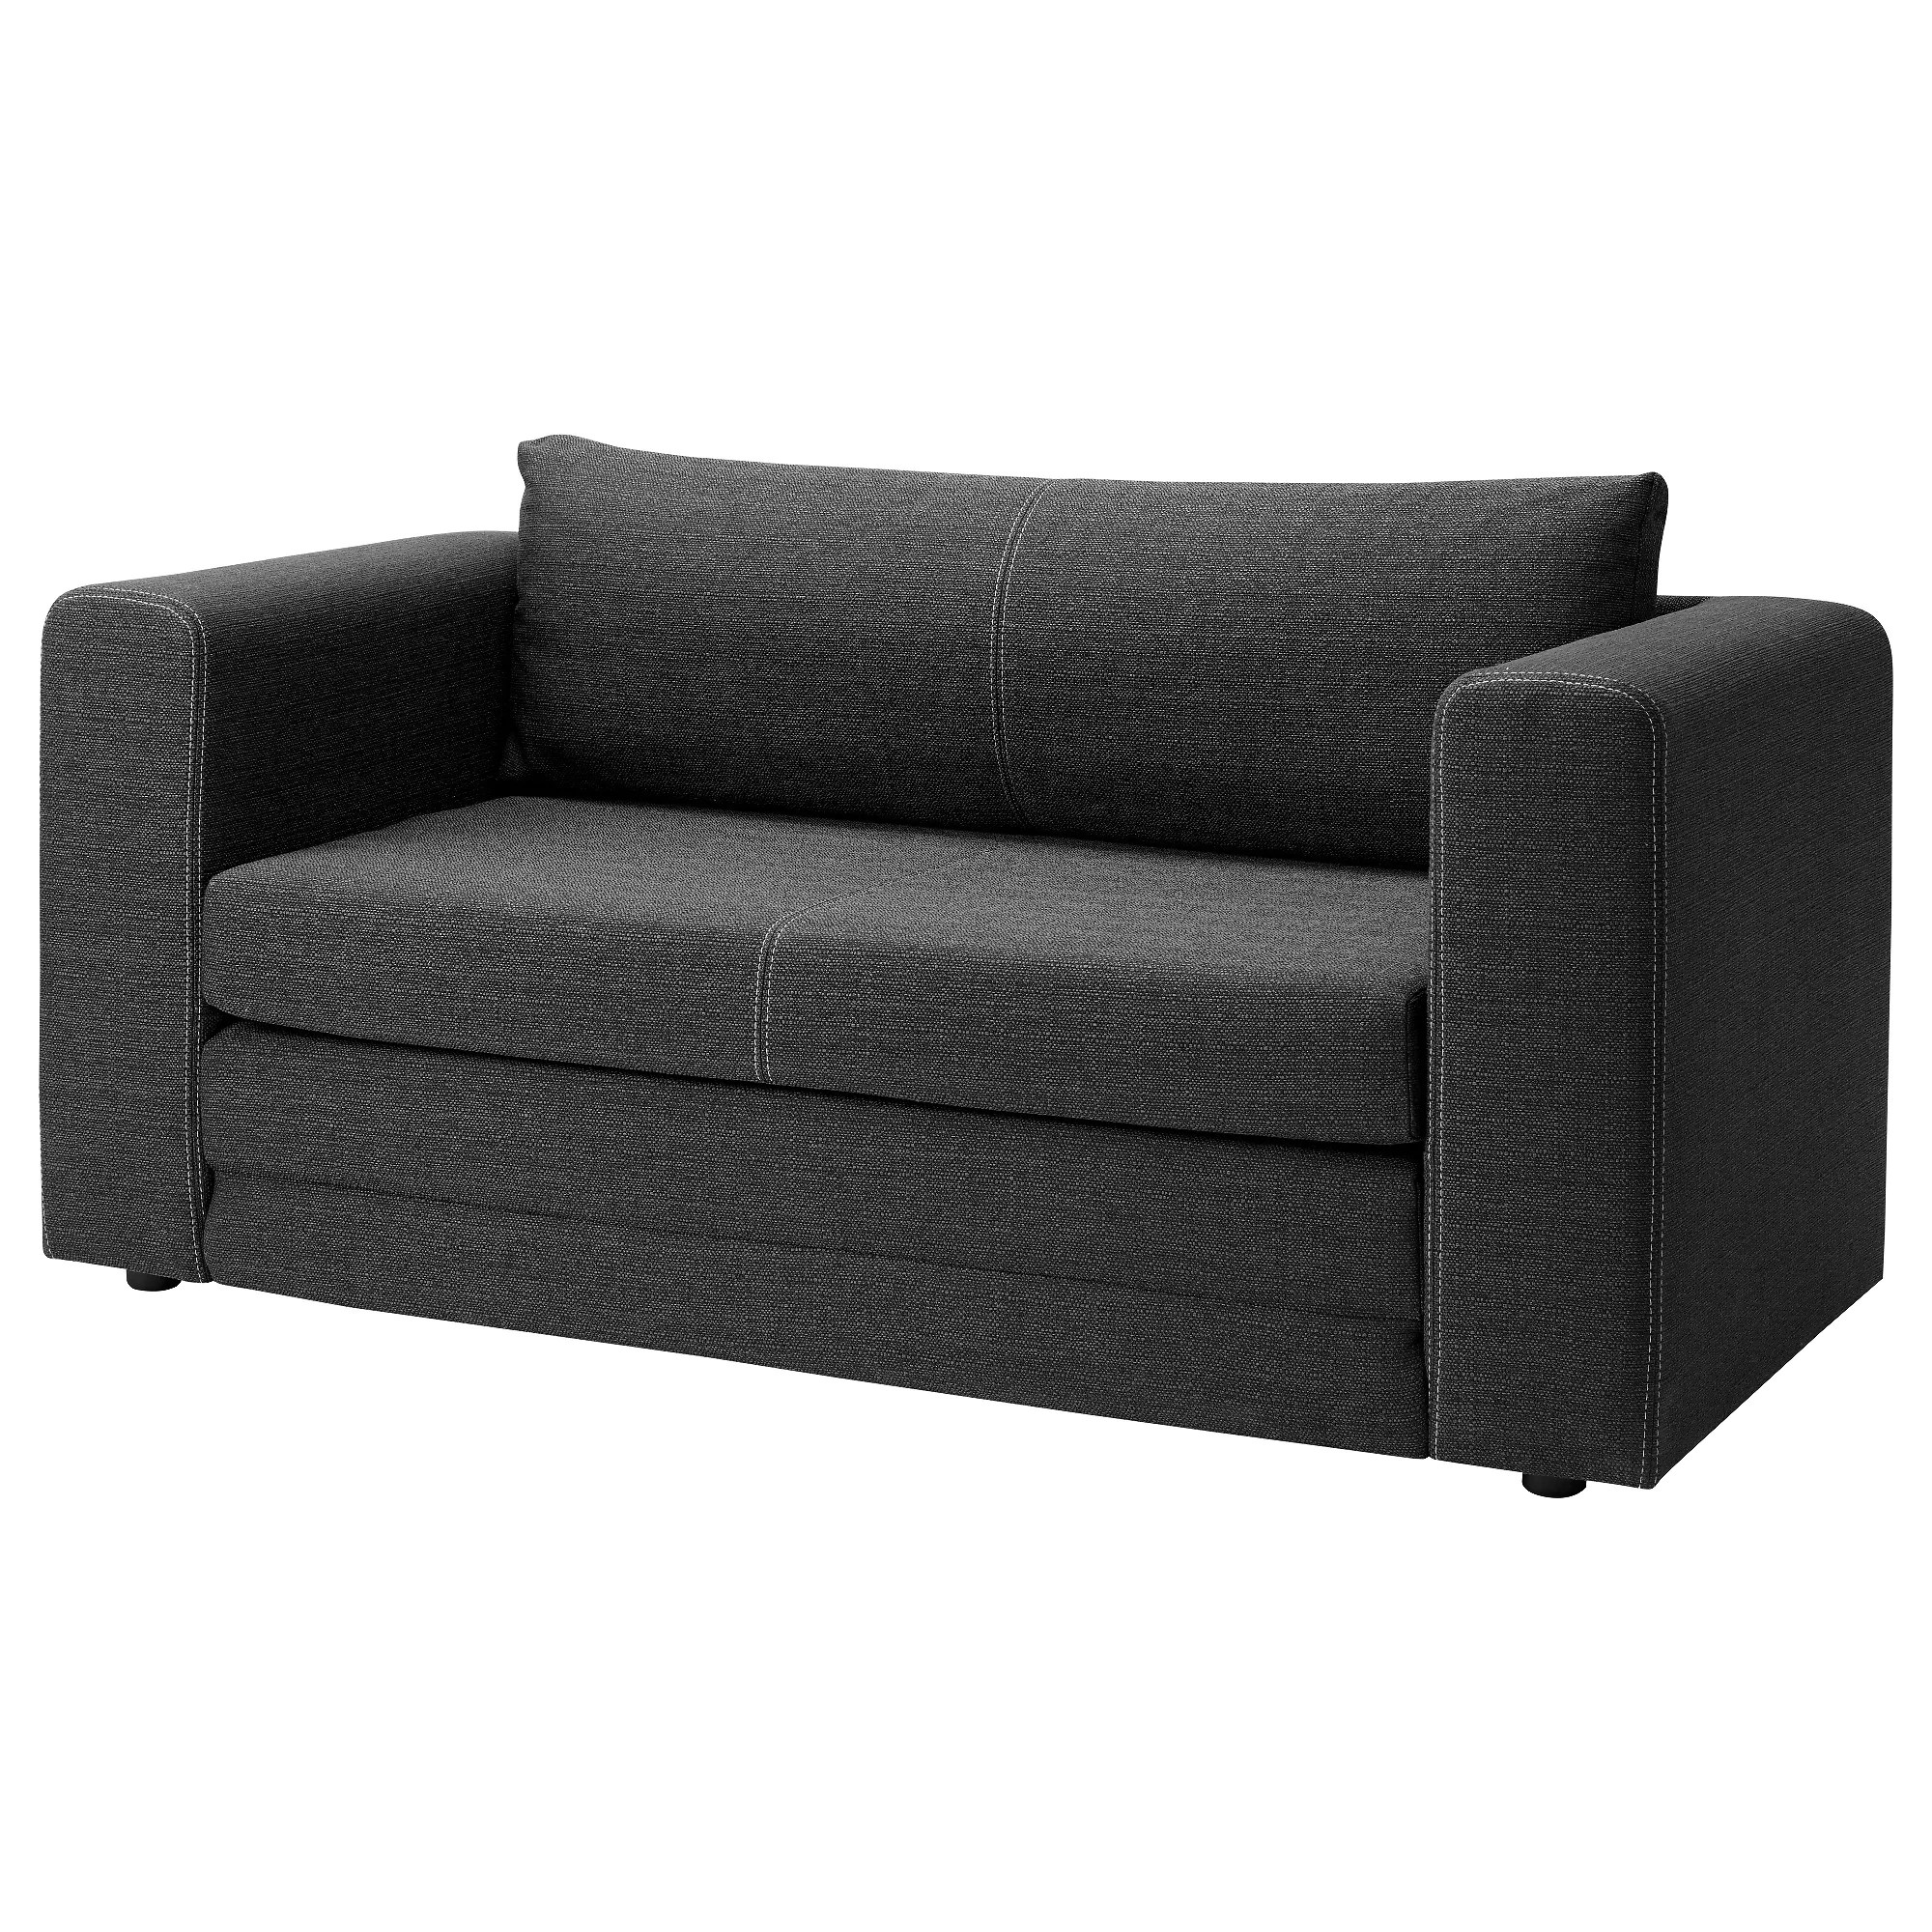 2er Bettsofa Ikea Solsta 2er Bettsofa Askeby Grau